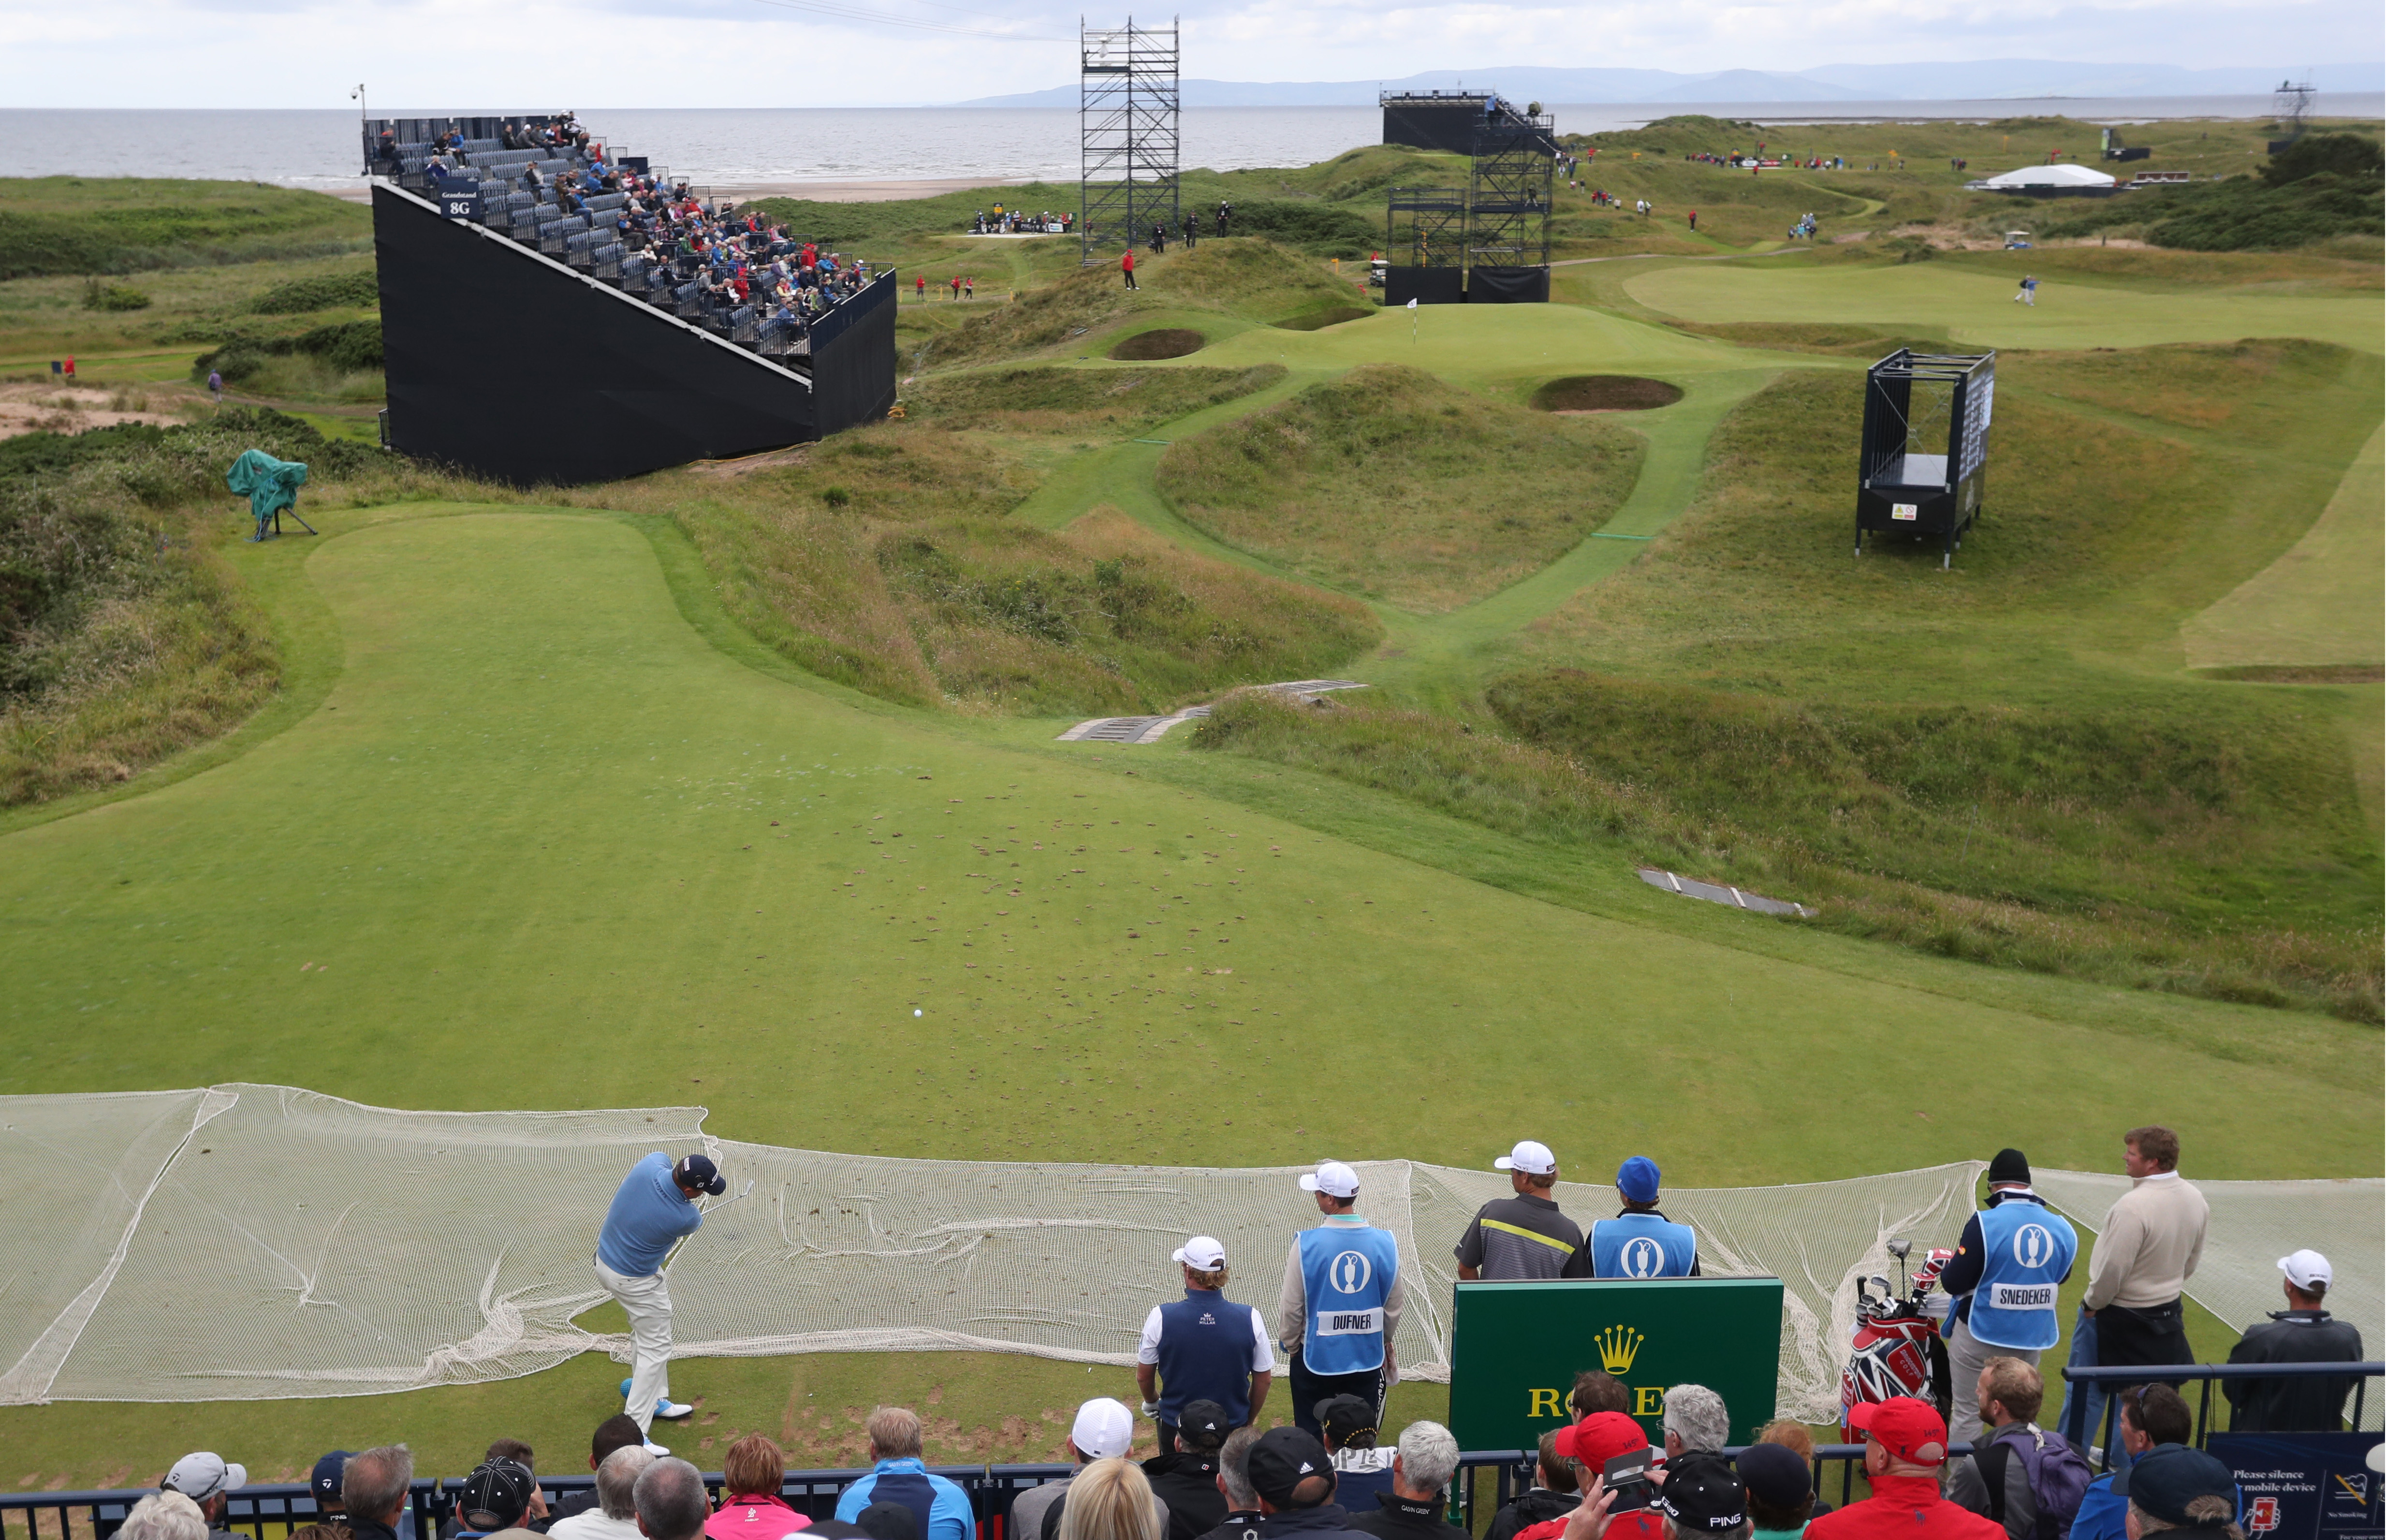 Jason Dufner of the US plays of the 8th tee, the hole a par 3, is 123 yards long and known as the 'postage stamp' during a practice round for the British Open Golf Championships at the Royal Troon Golf Club in Troon, Scotland, Tuesday, July 12, 2016. The